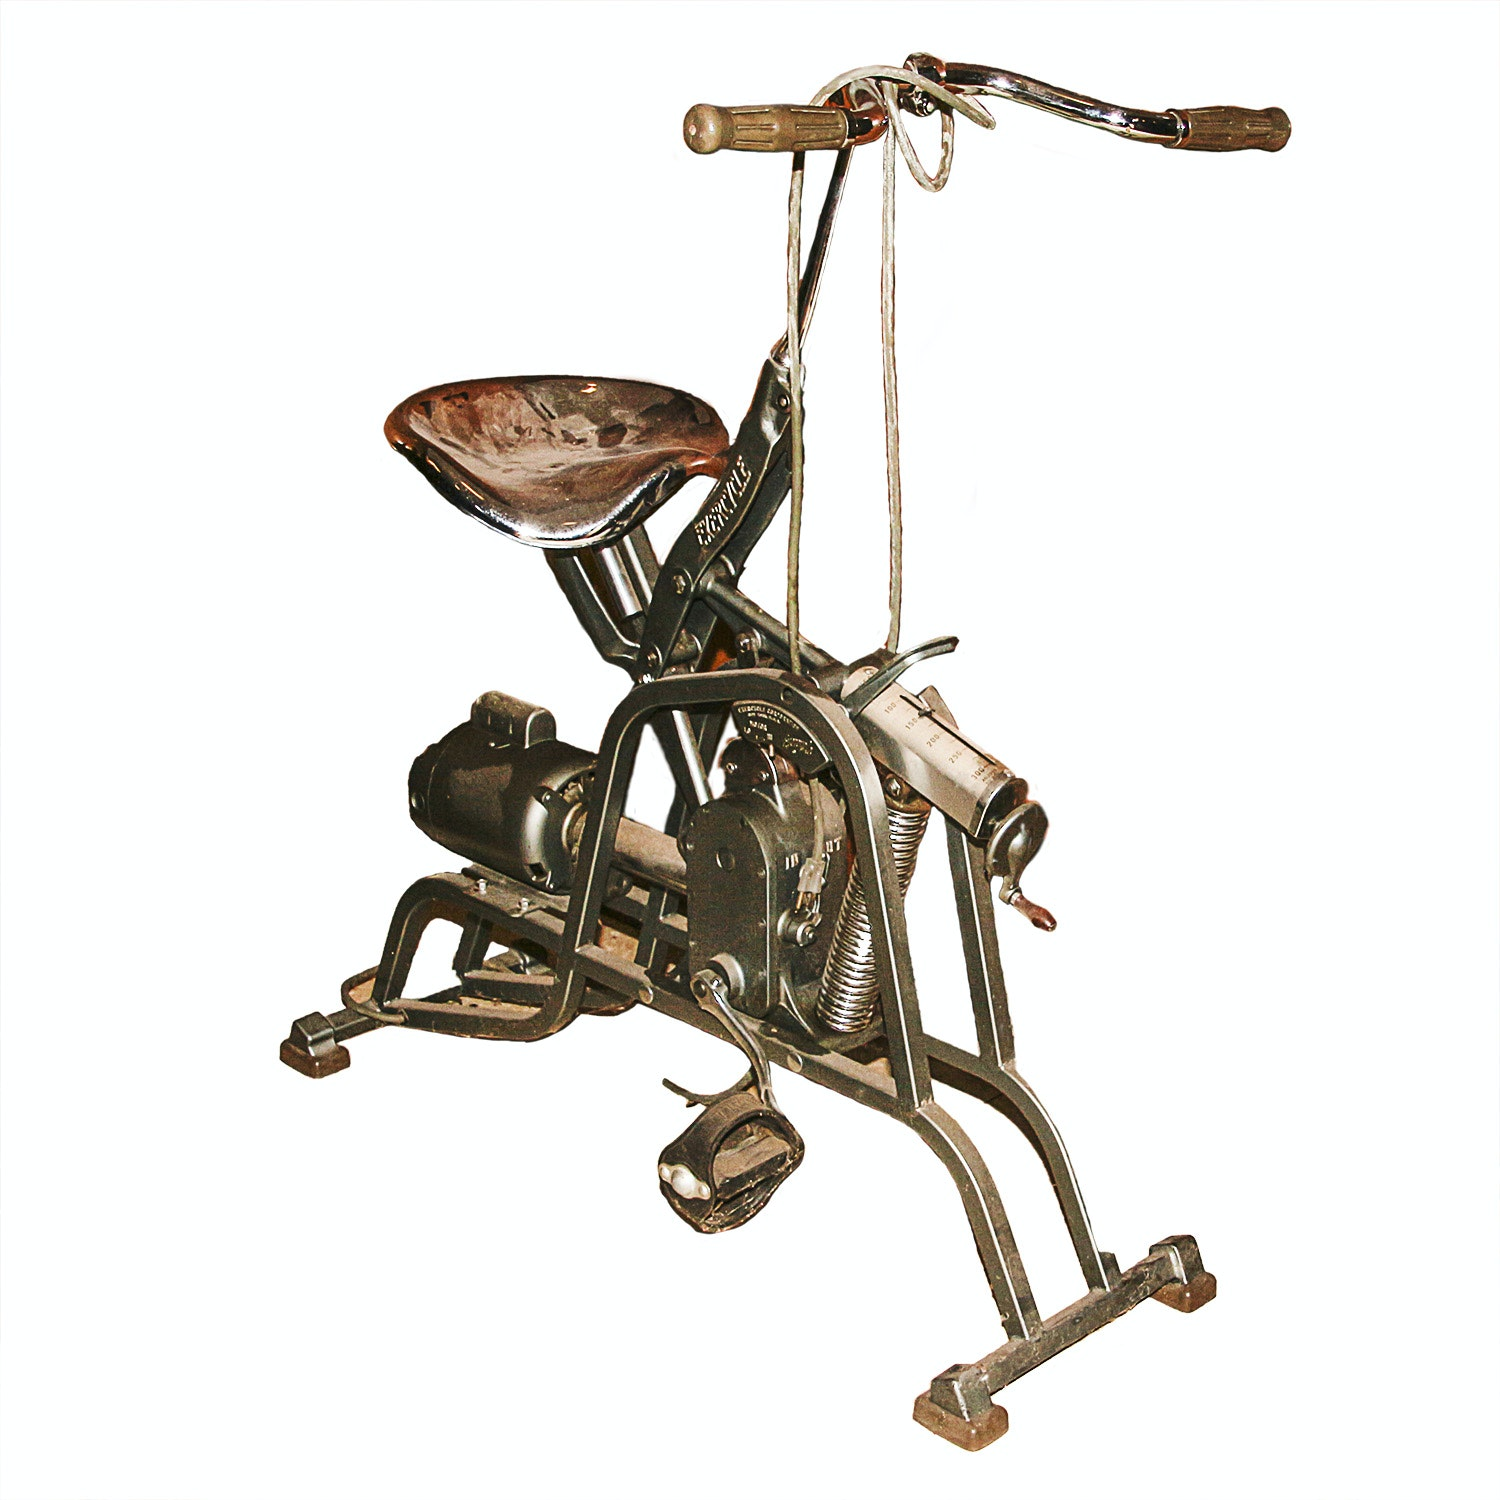 Vintage Exercycle Stationary Bike